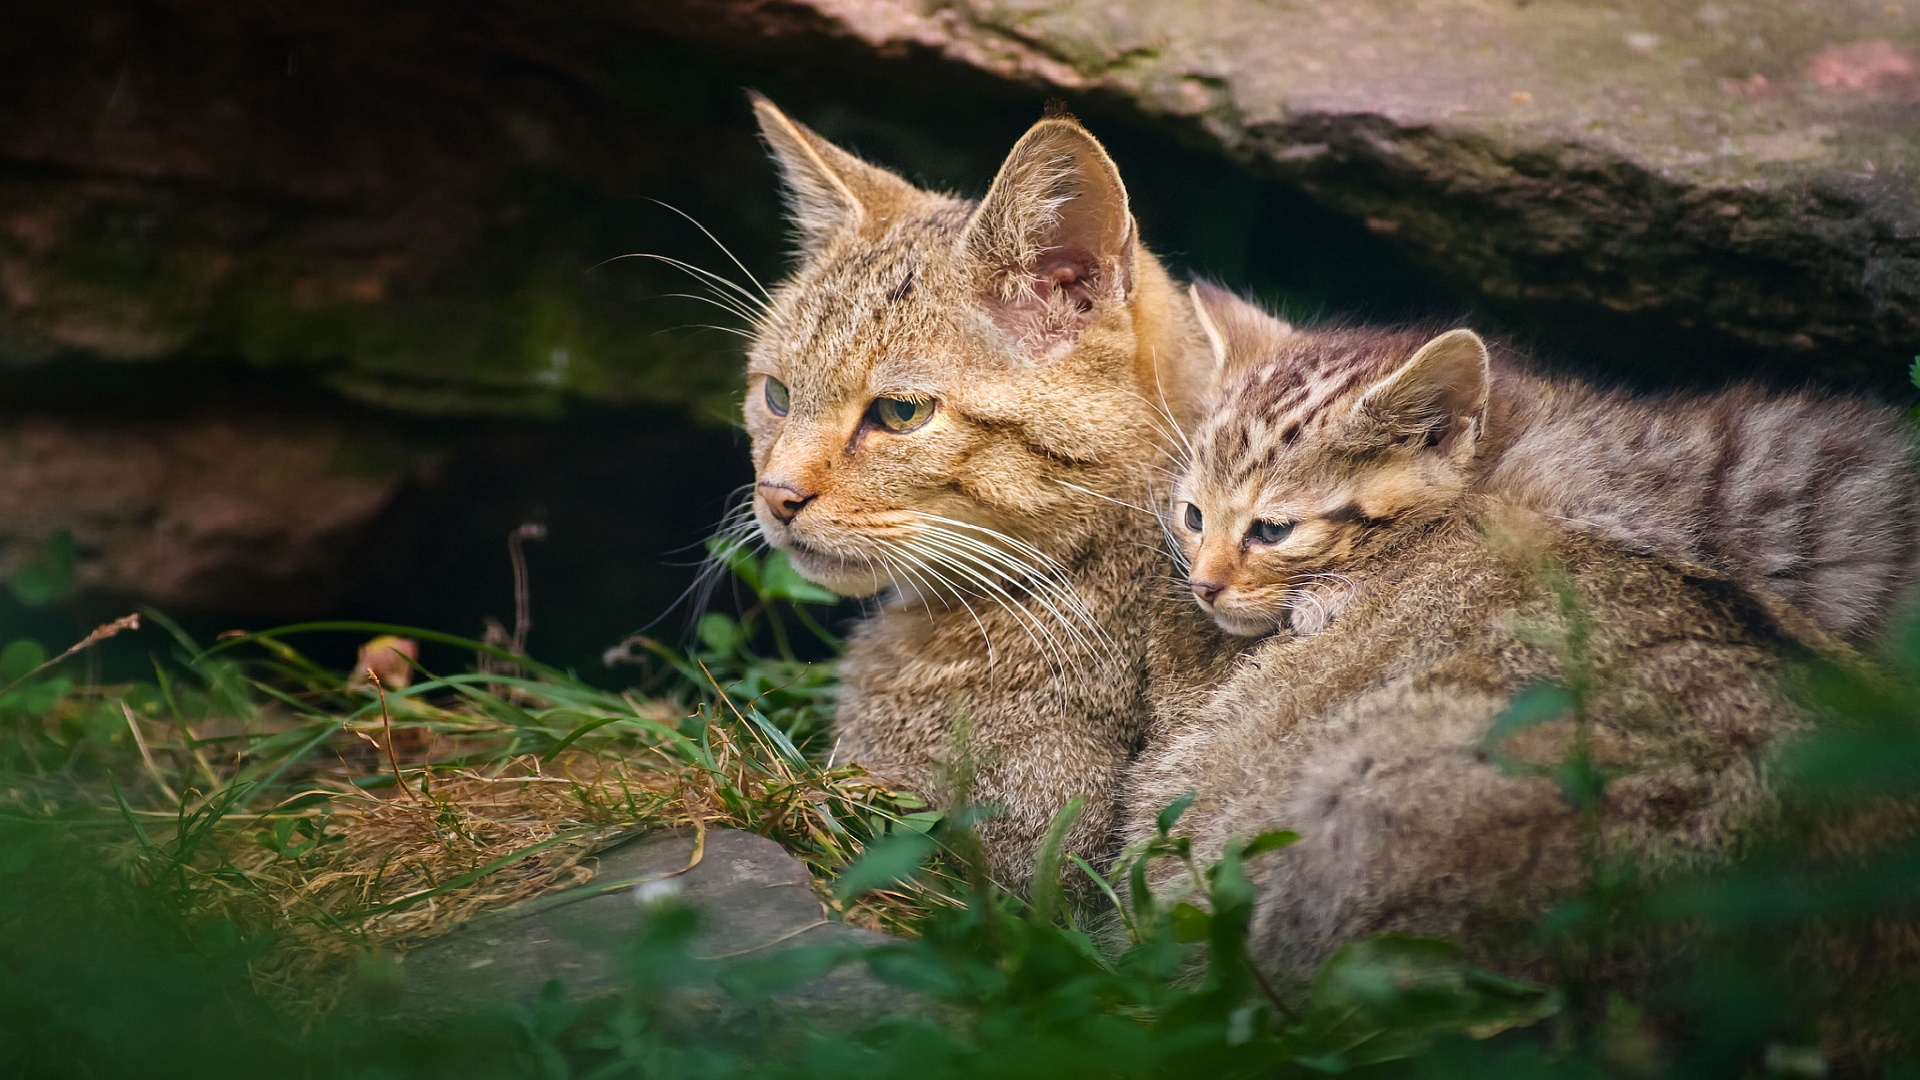 Wild Cats Wallpaper - WallpaperSafari